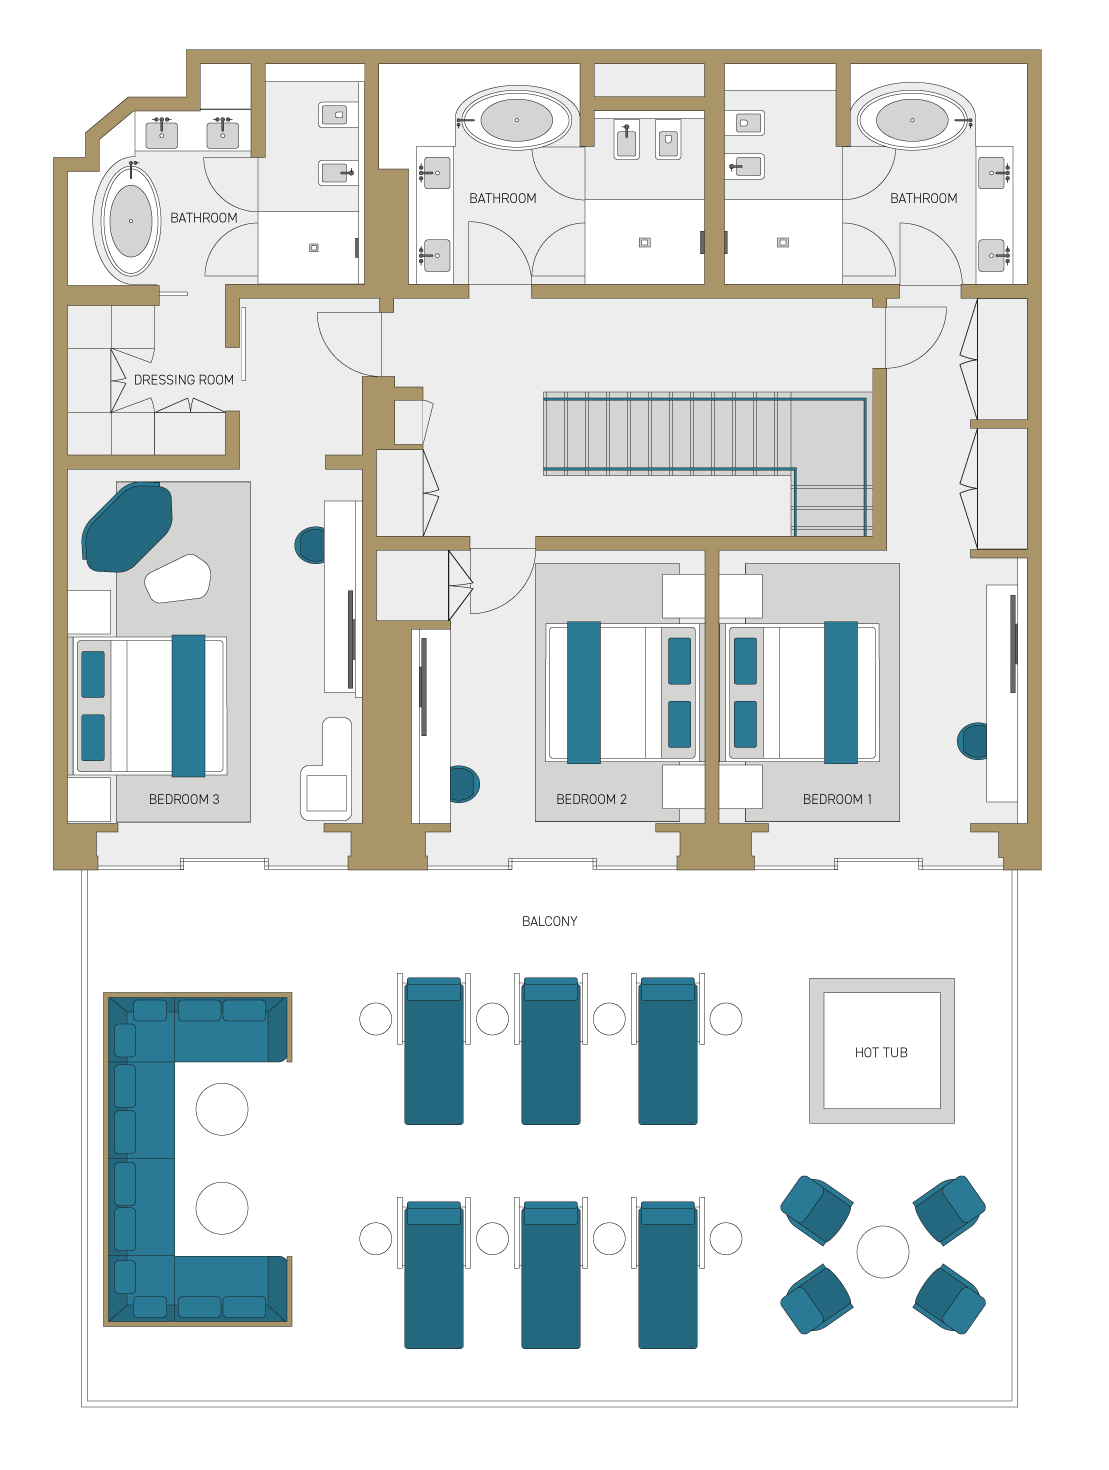 Four Bedroom Suites Features floorplan.